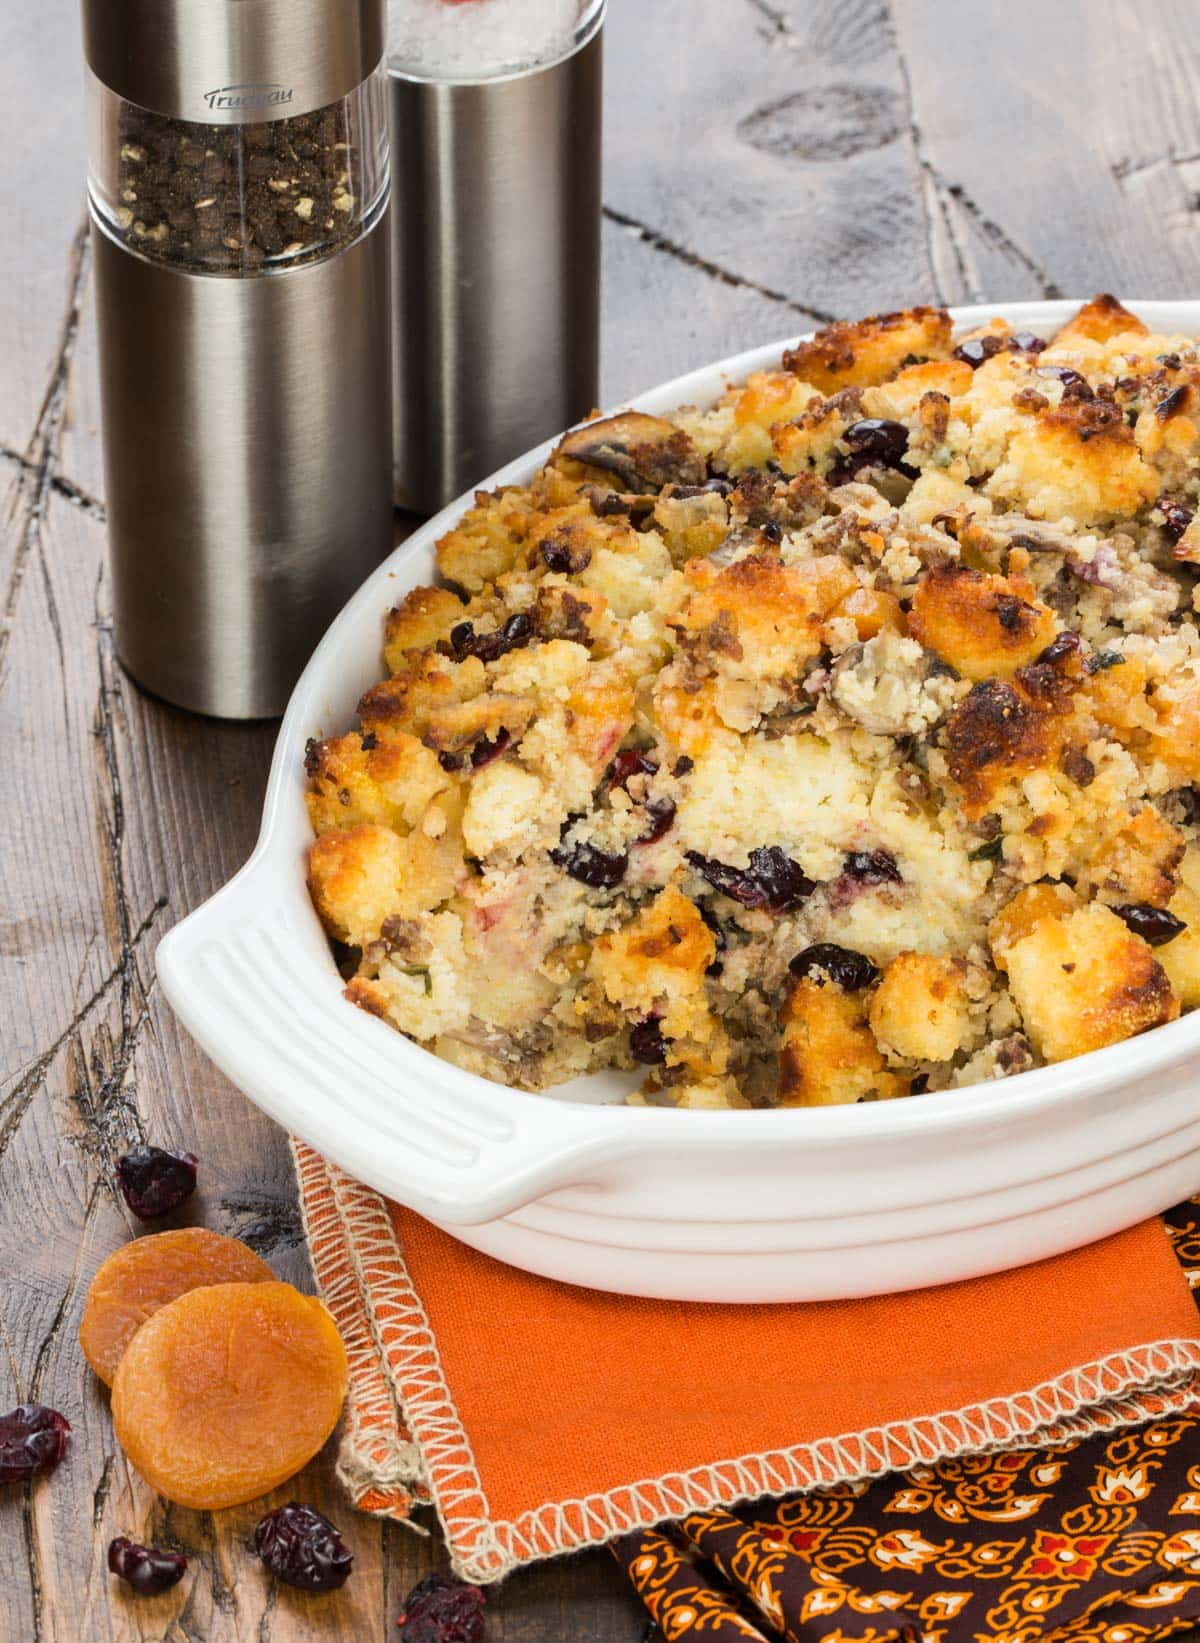 Put a twist on your usual Thanksgiving side with this savory Cornbread Stuffing with Sausage and Dried Fruit.